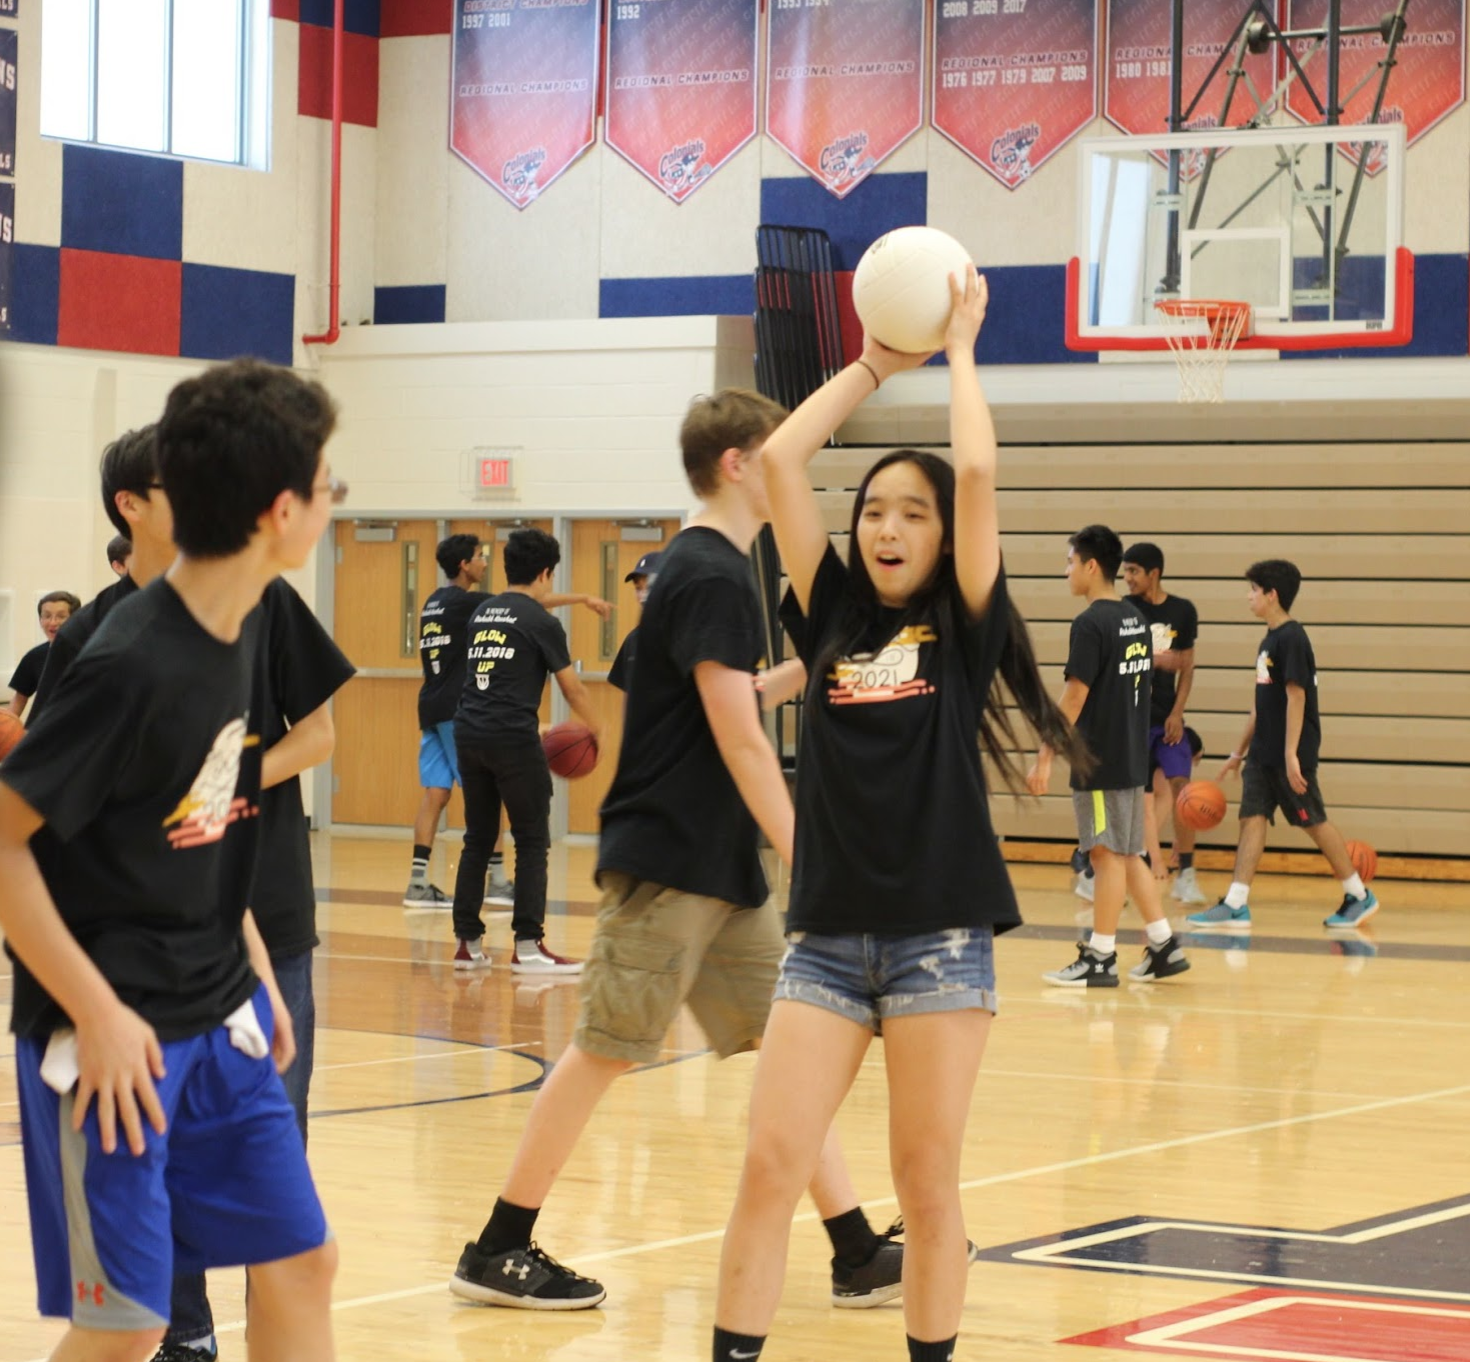 Miranda+Xiong+catches+a+volleyball+in+the+gym+while+waiting+for+Lock-In+to+start.